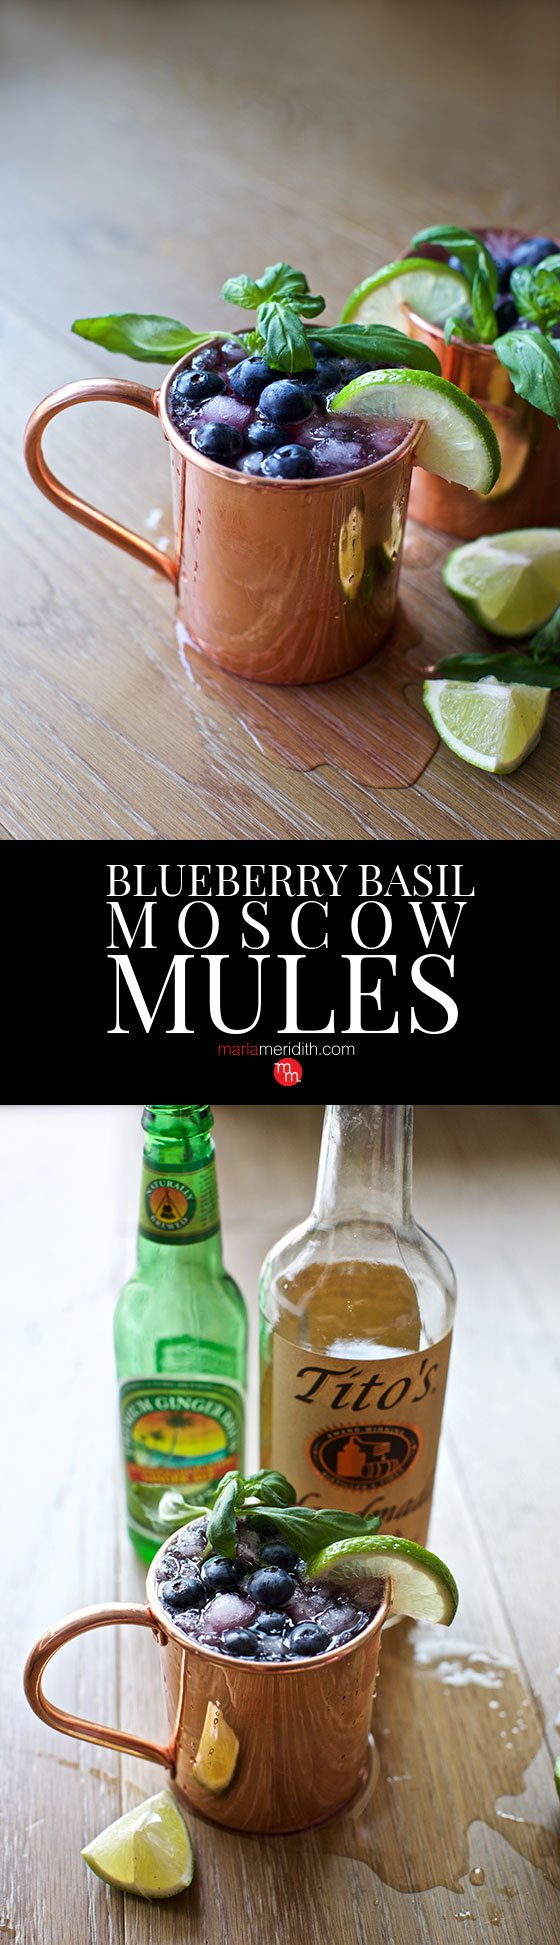 Celebrate summer with these BLUEBERRY BASIL MOSCOW MULE COCKTAILS! MarlaMeridith.com ( @marlameridith )